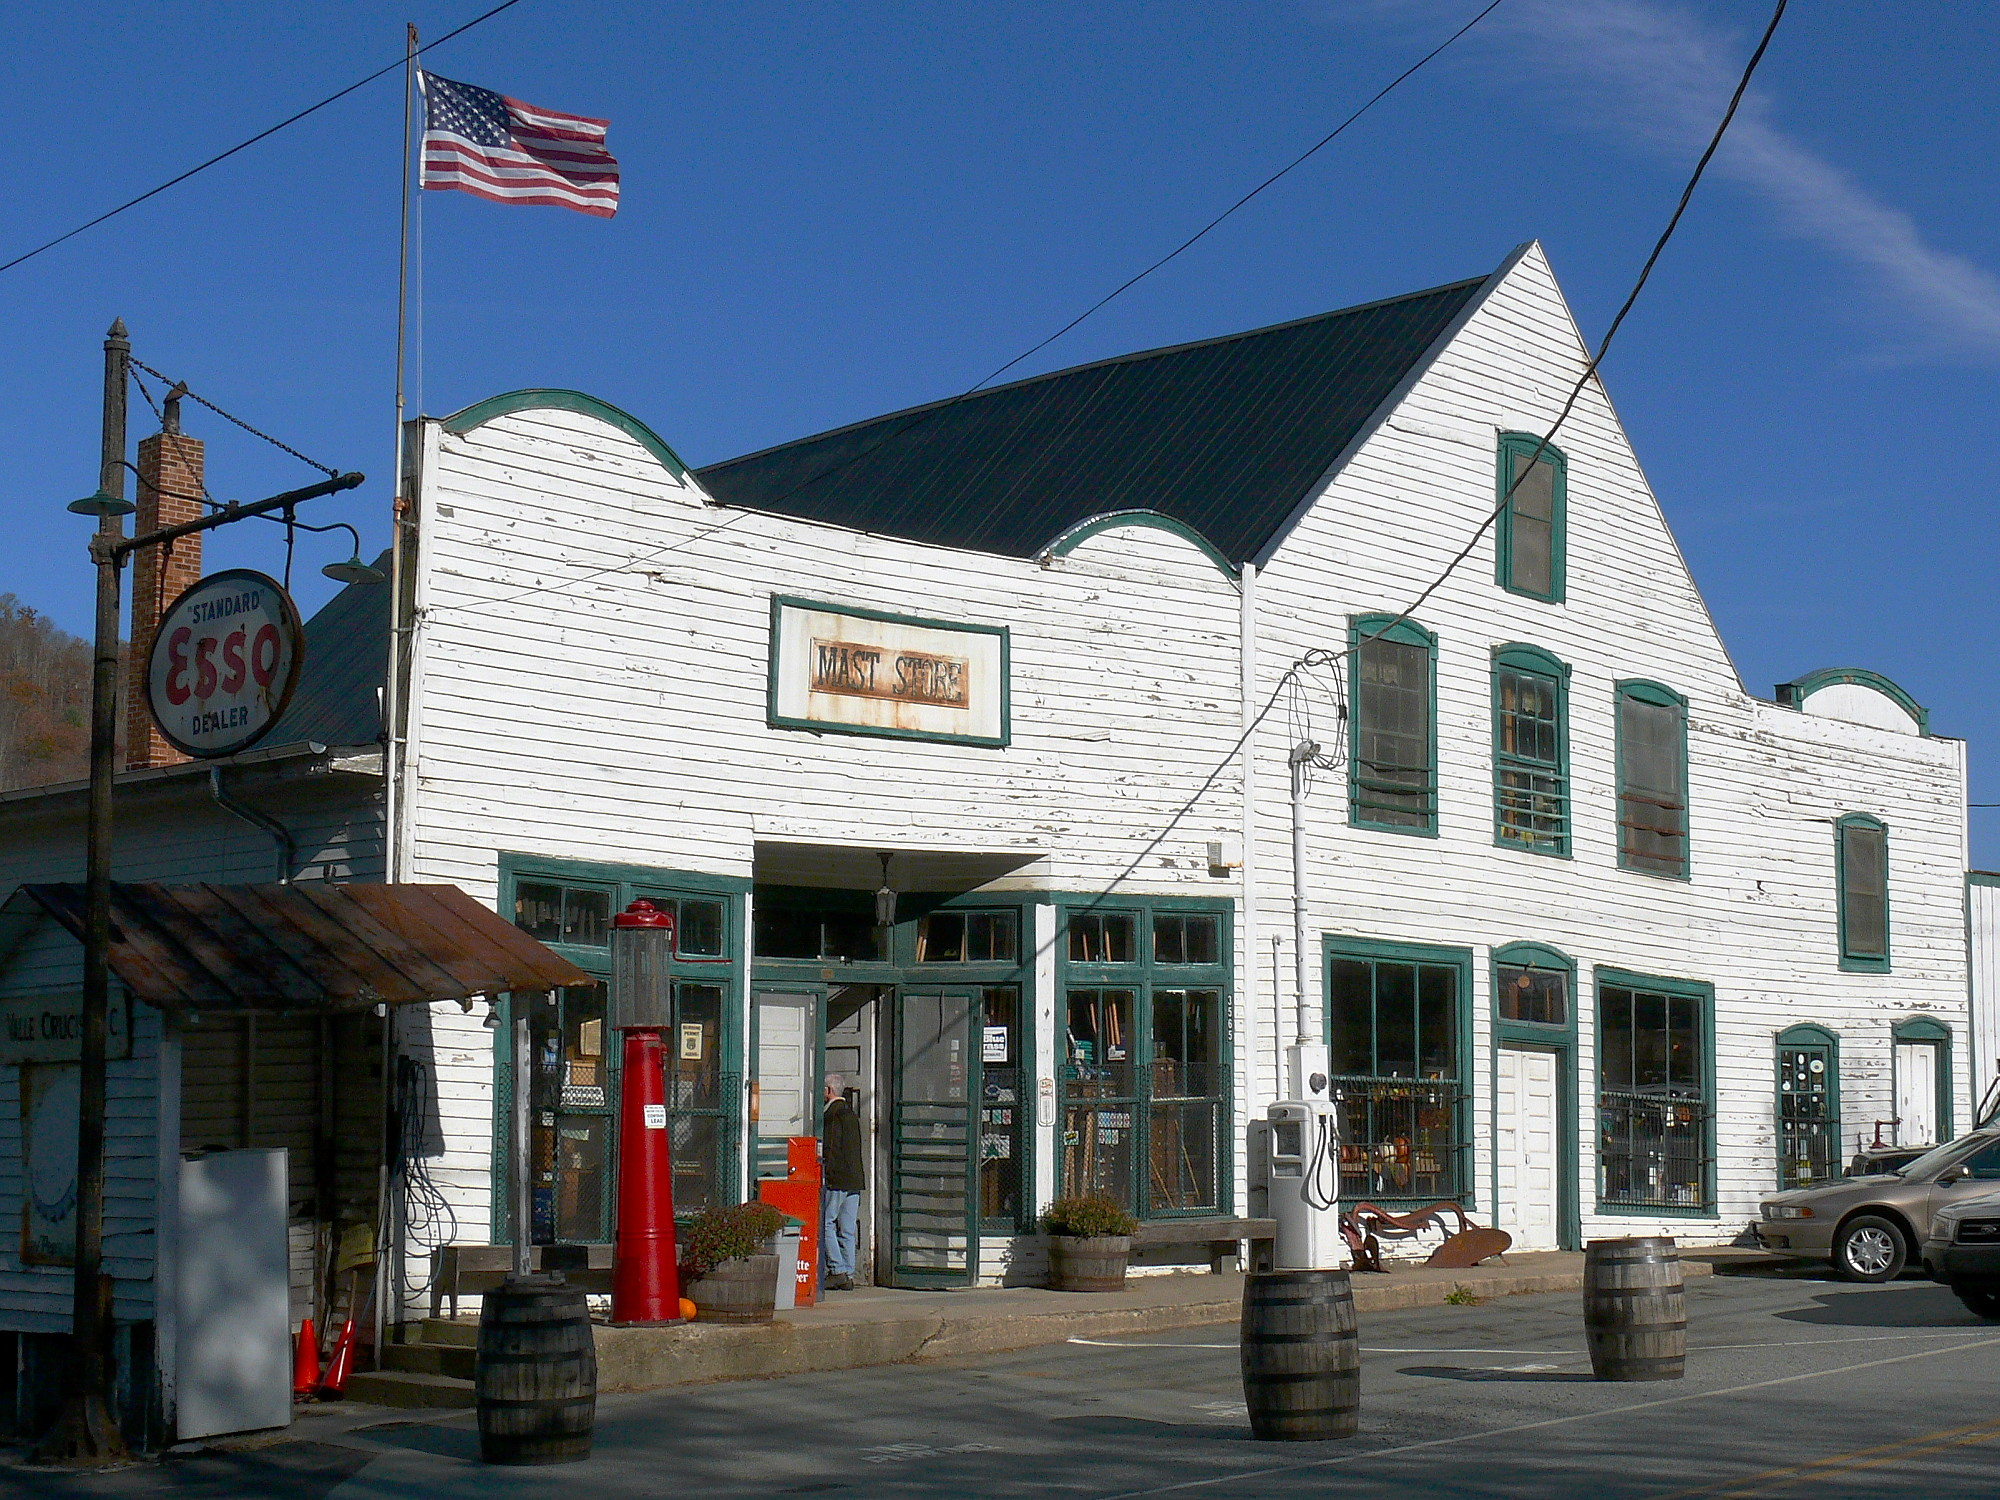 Mast General Store. , likes · 2, talking about this. The Mast General Store was started by Henry Taylor in WW Mast bought into the.